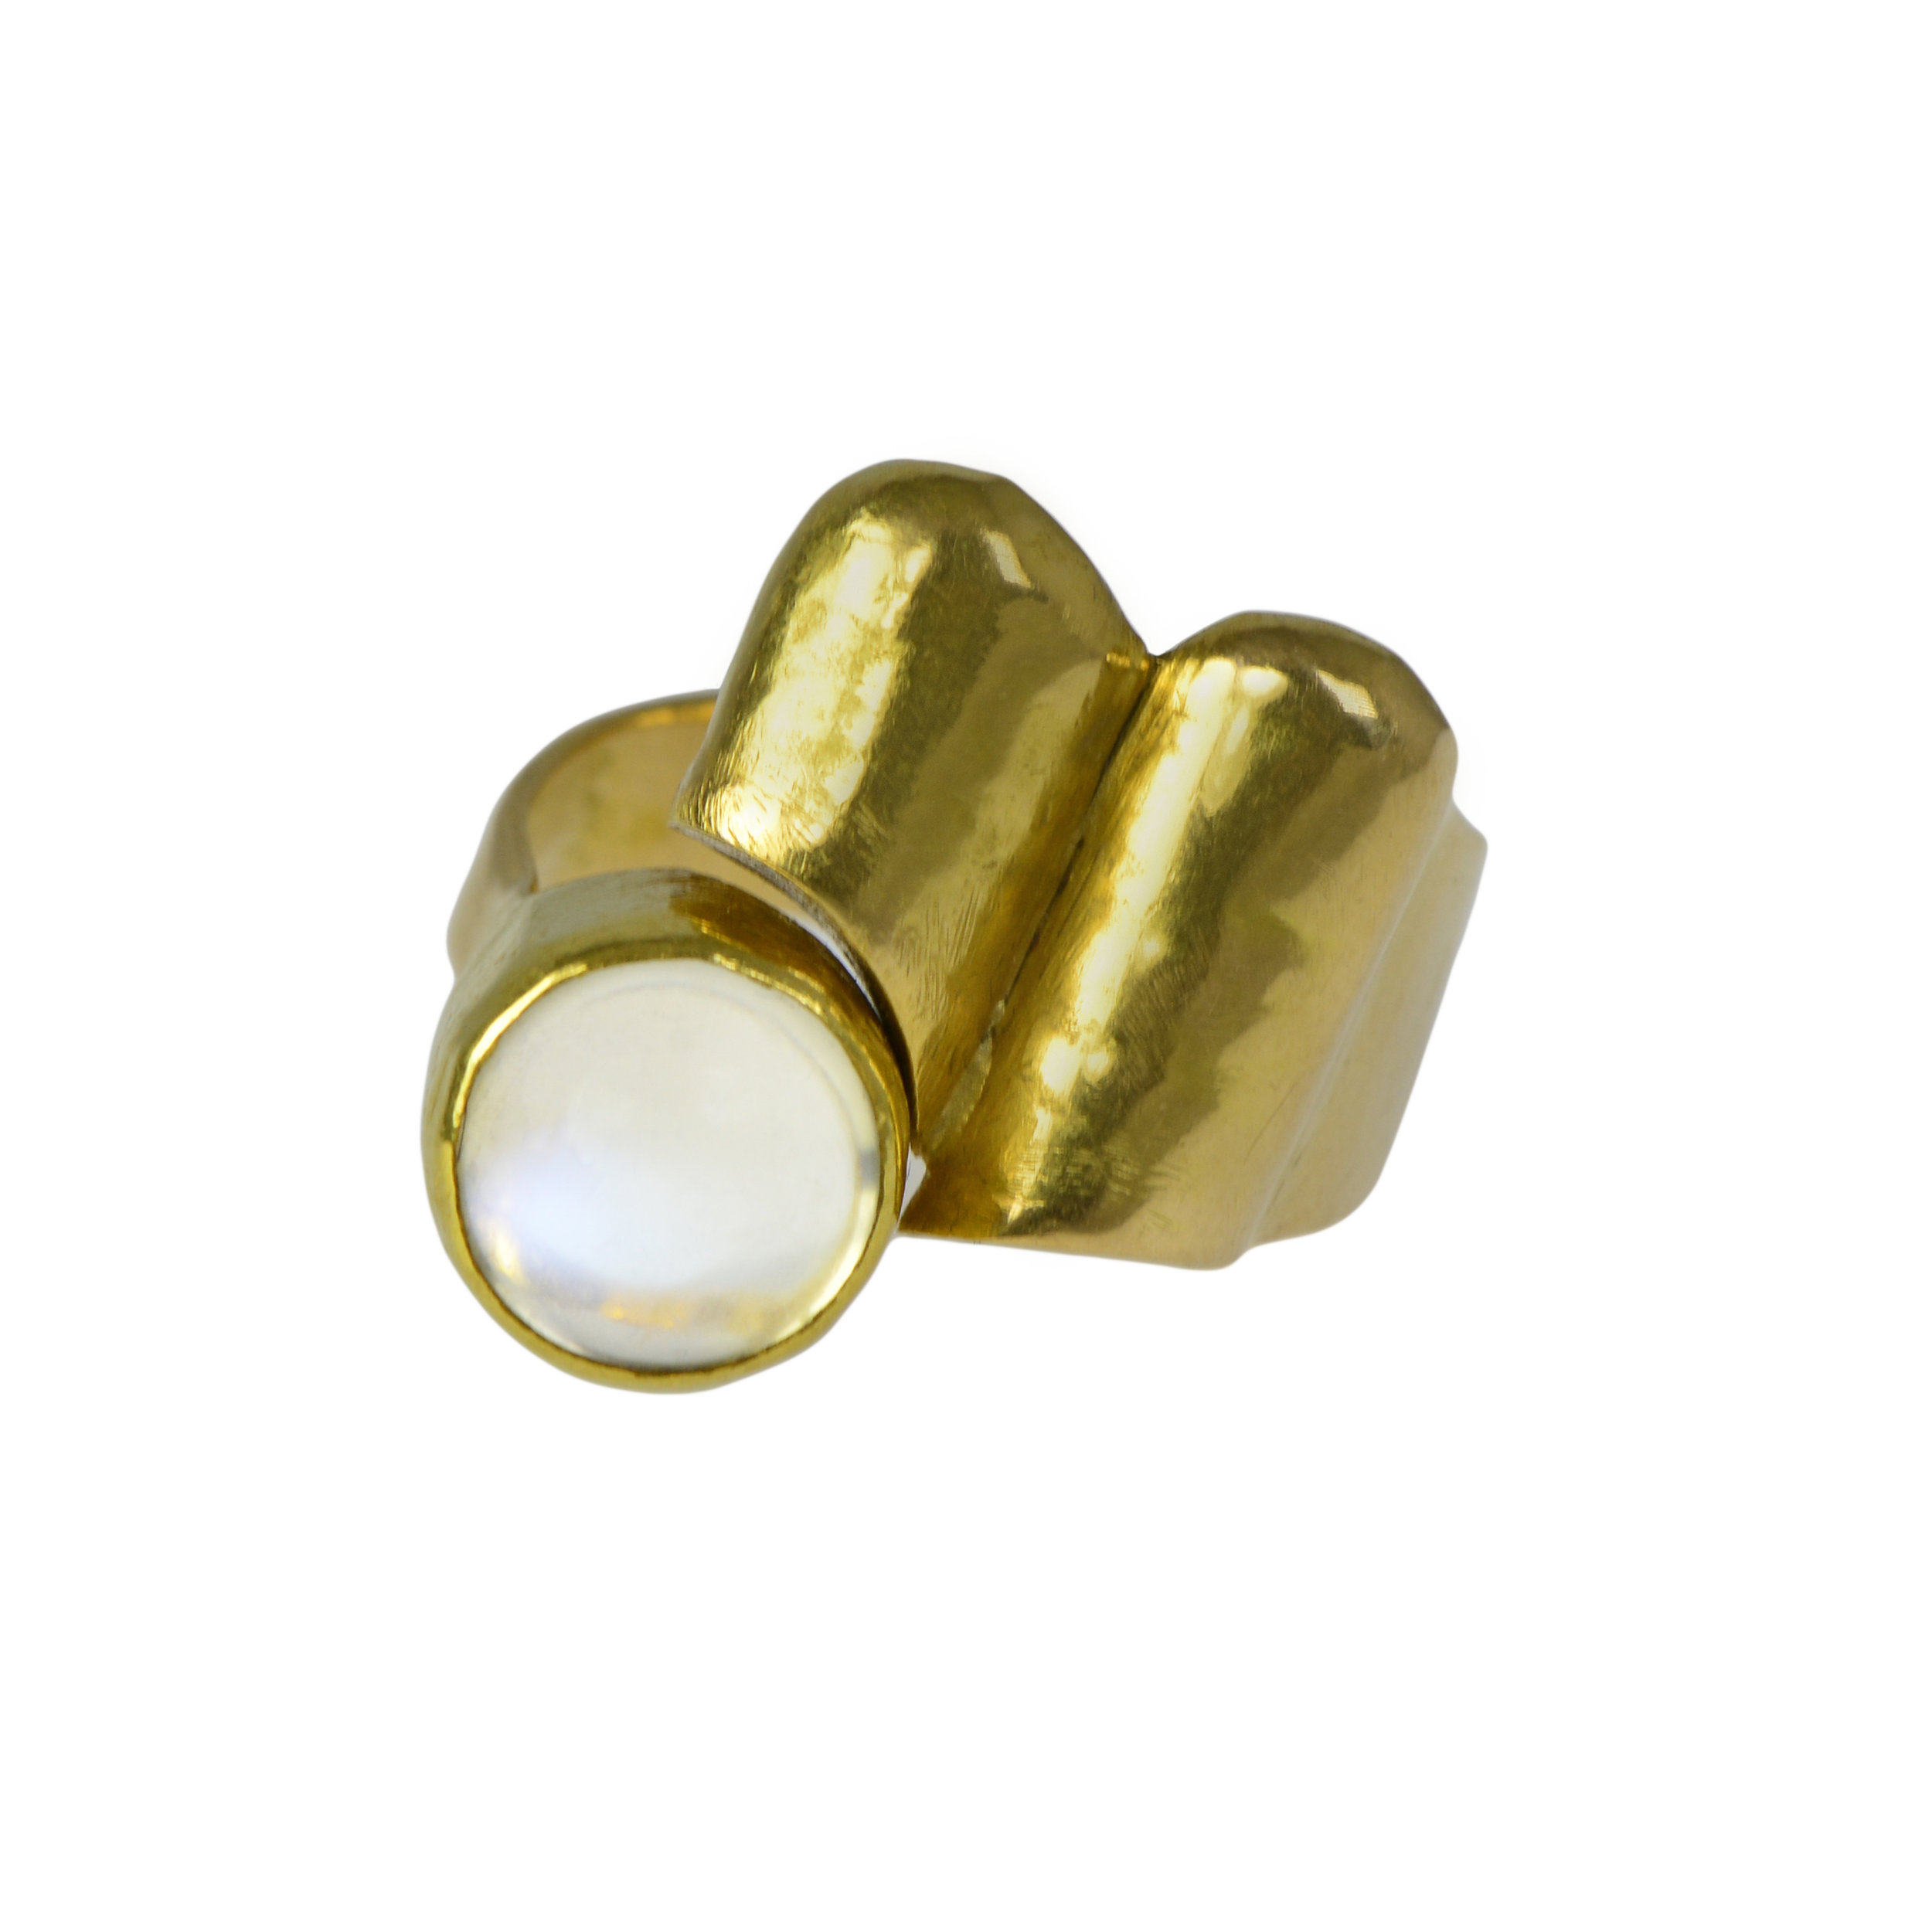 A ring of cabochon moonstone and 18k gold, Christa Bauer, Germany, c. 1960s. Size 7 ½""